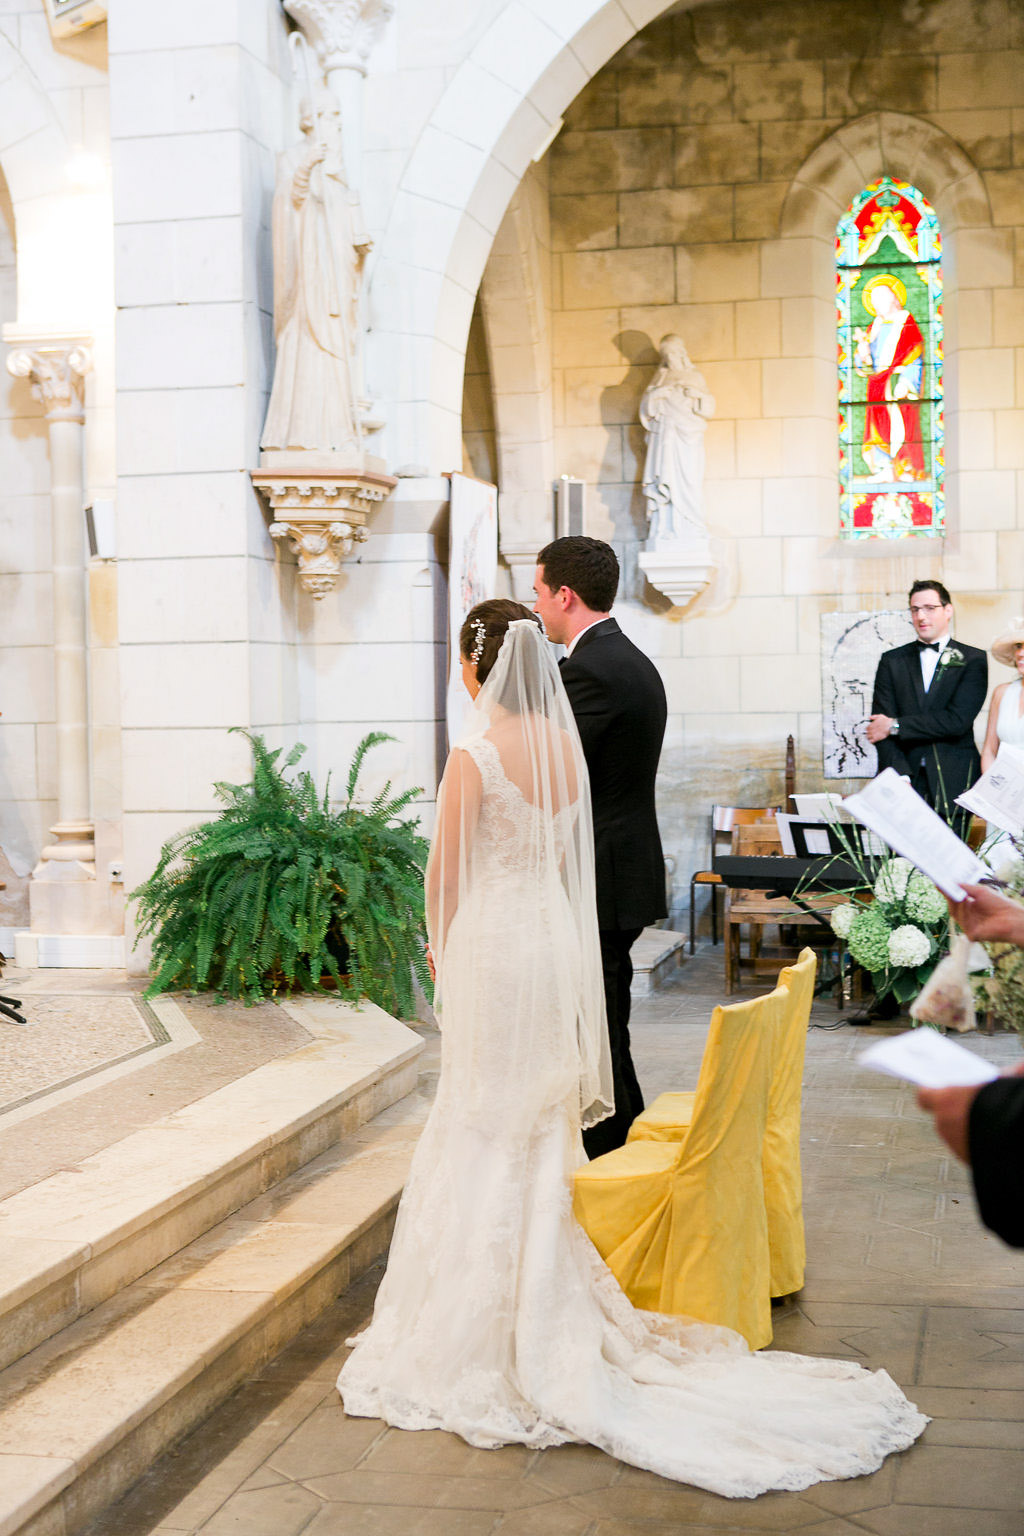 Church ceremony French Chateau Wedding Saint Julien l'Ars